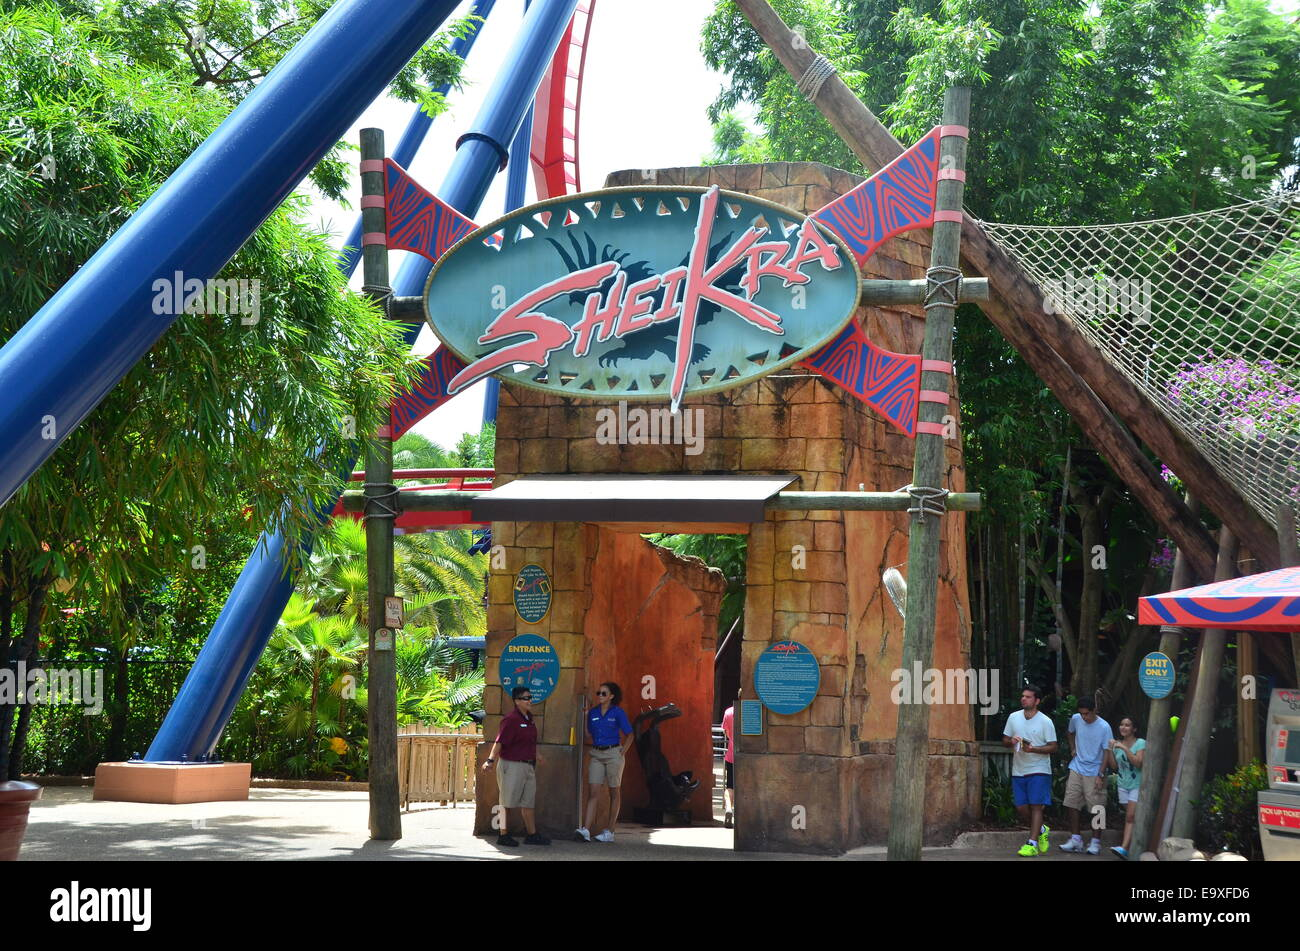 Image Result For Busch Gardens Williamsburg Email